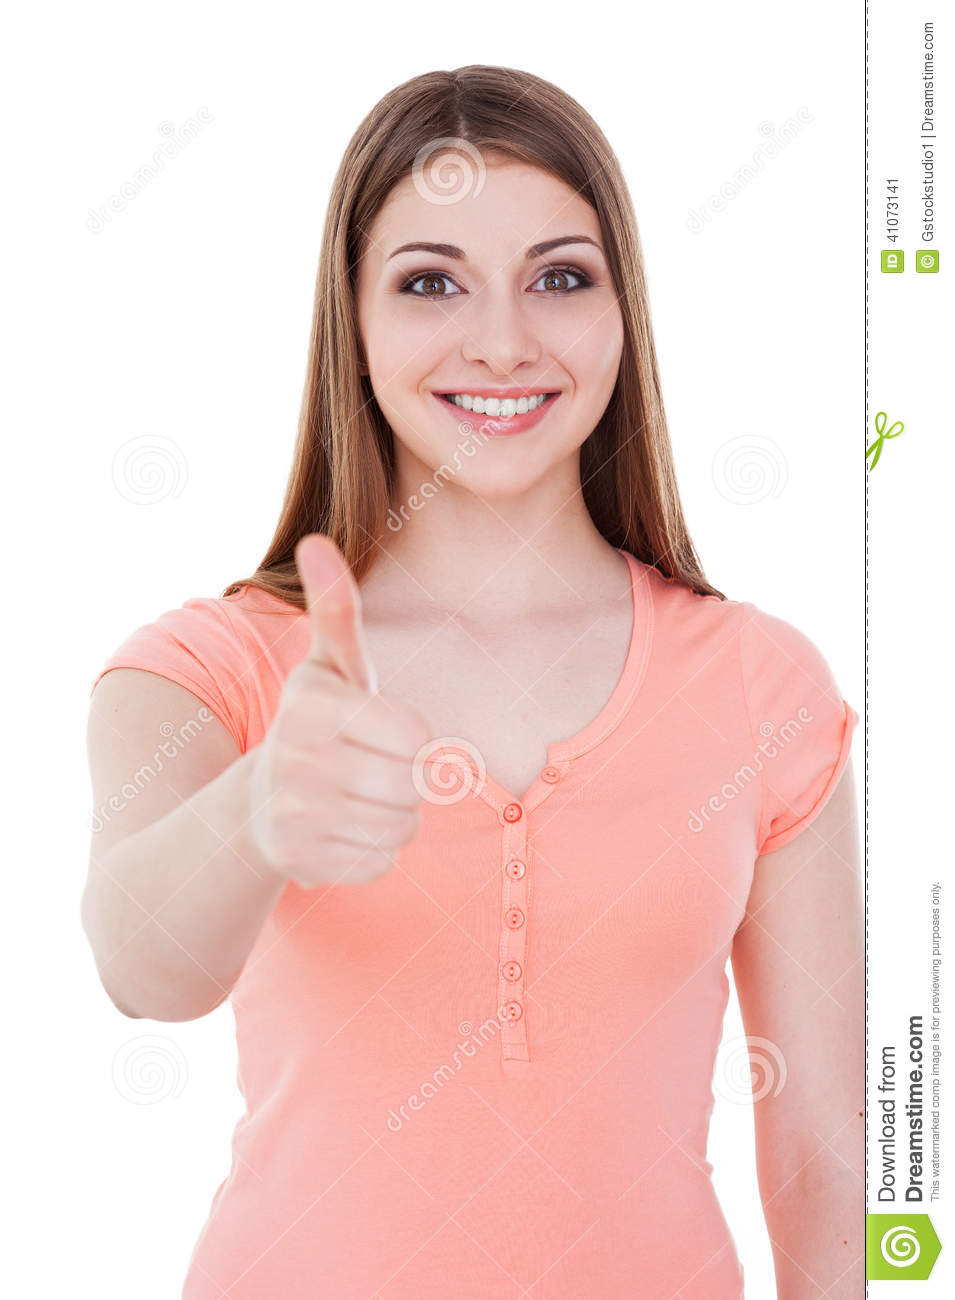 her thumb up